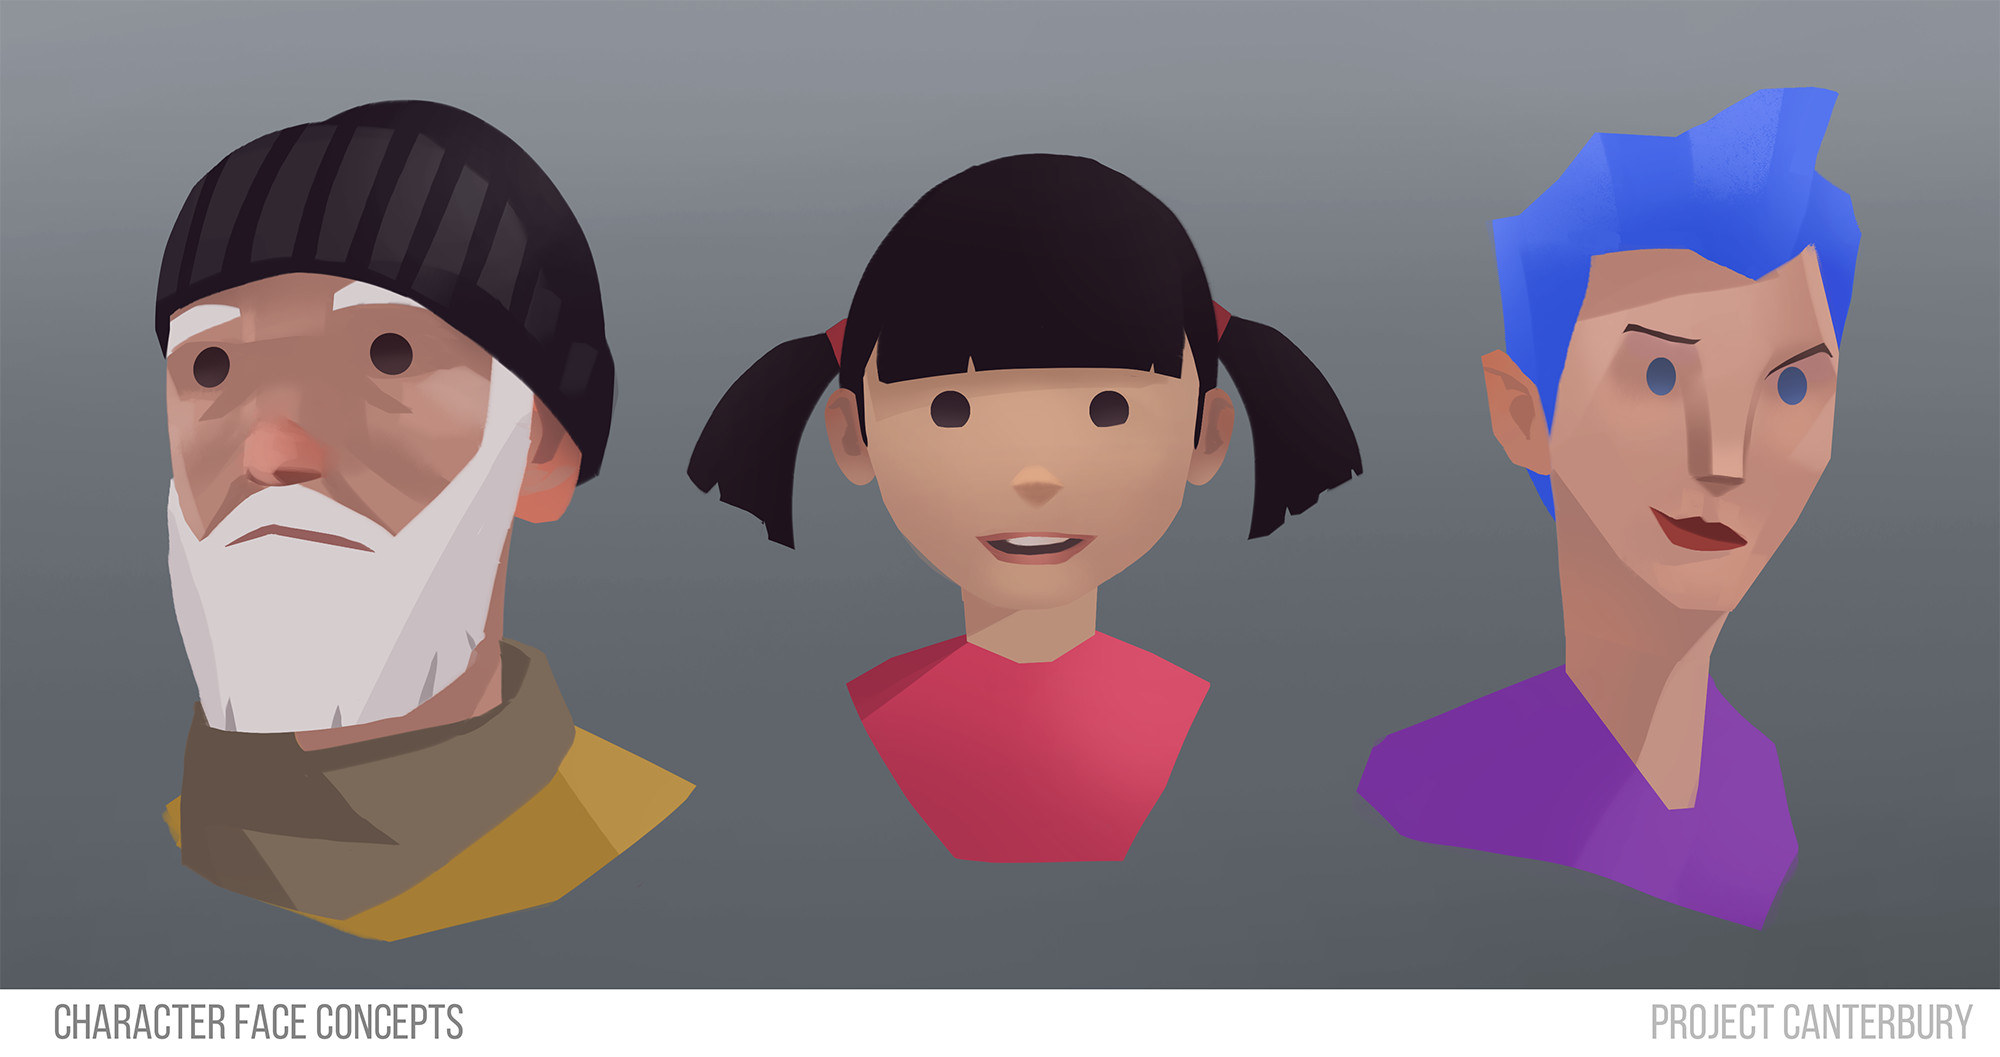 Avatar exploration for Project Canterbury.